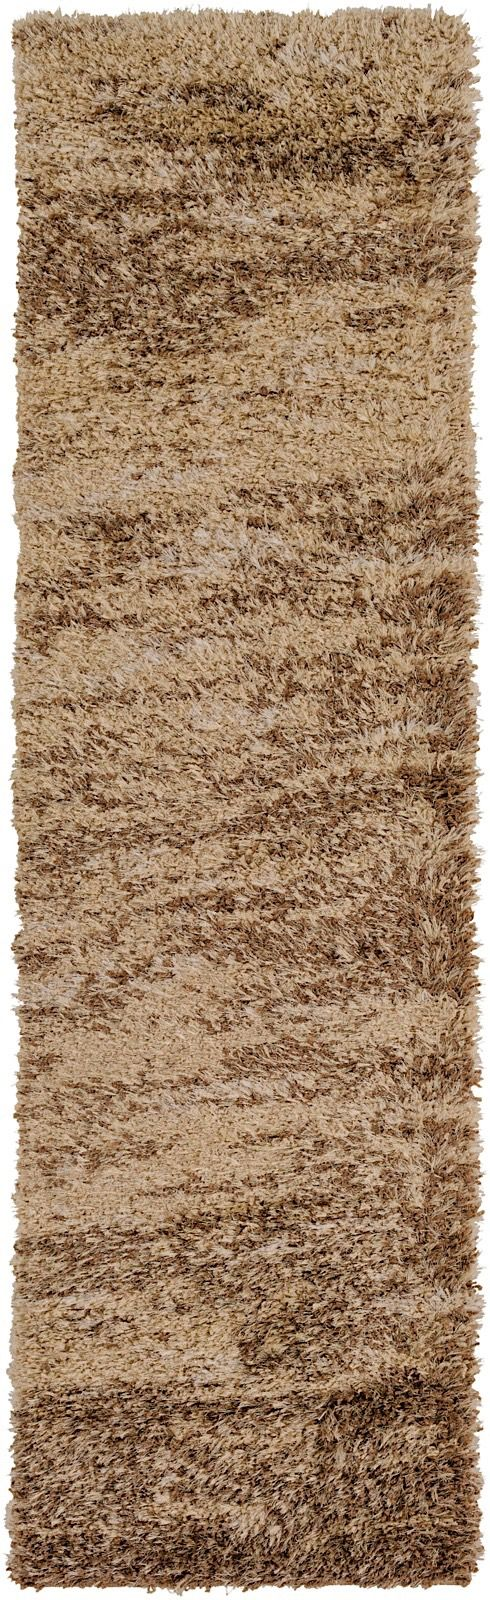 surya mercer contemporary area rug collection